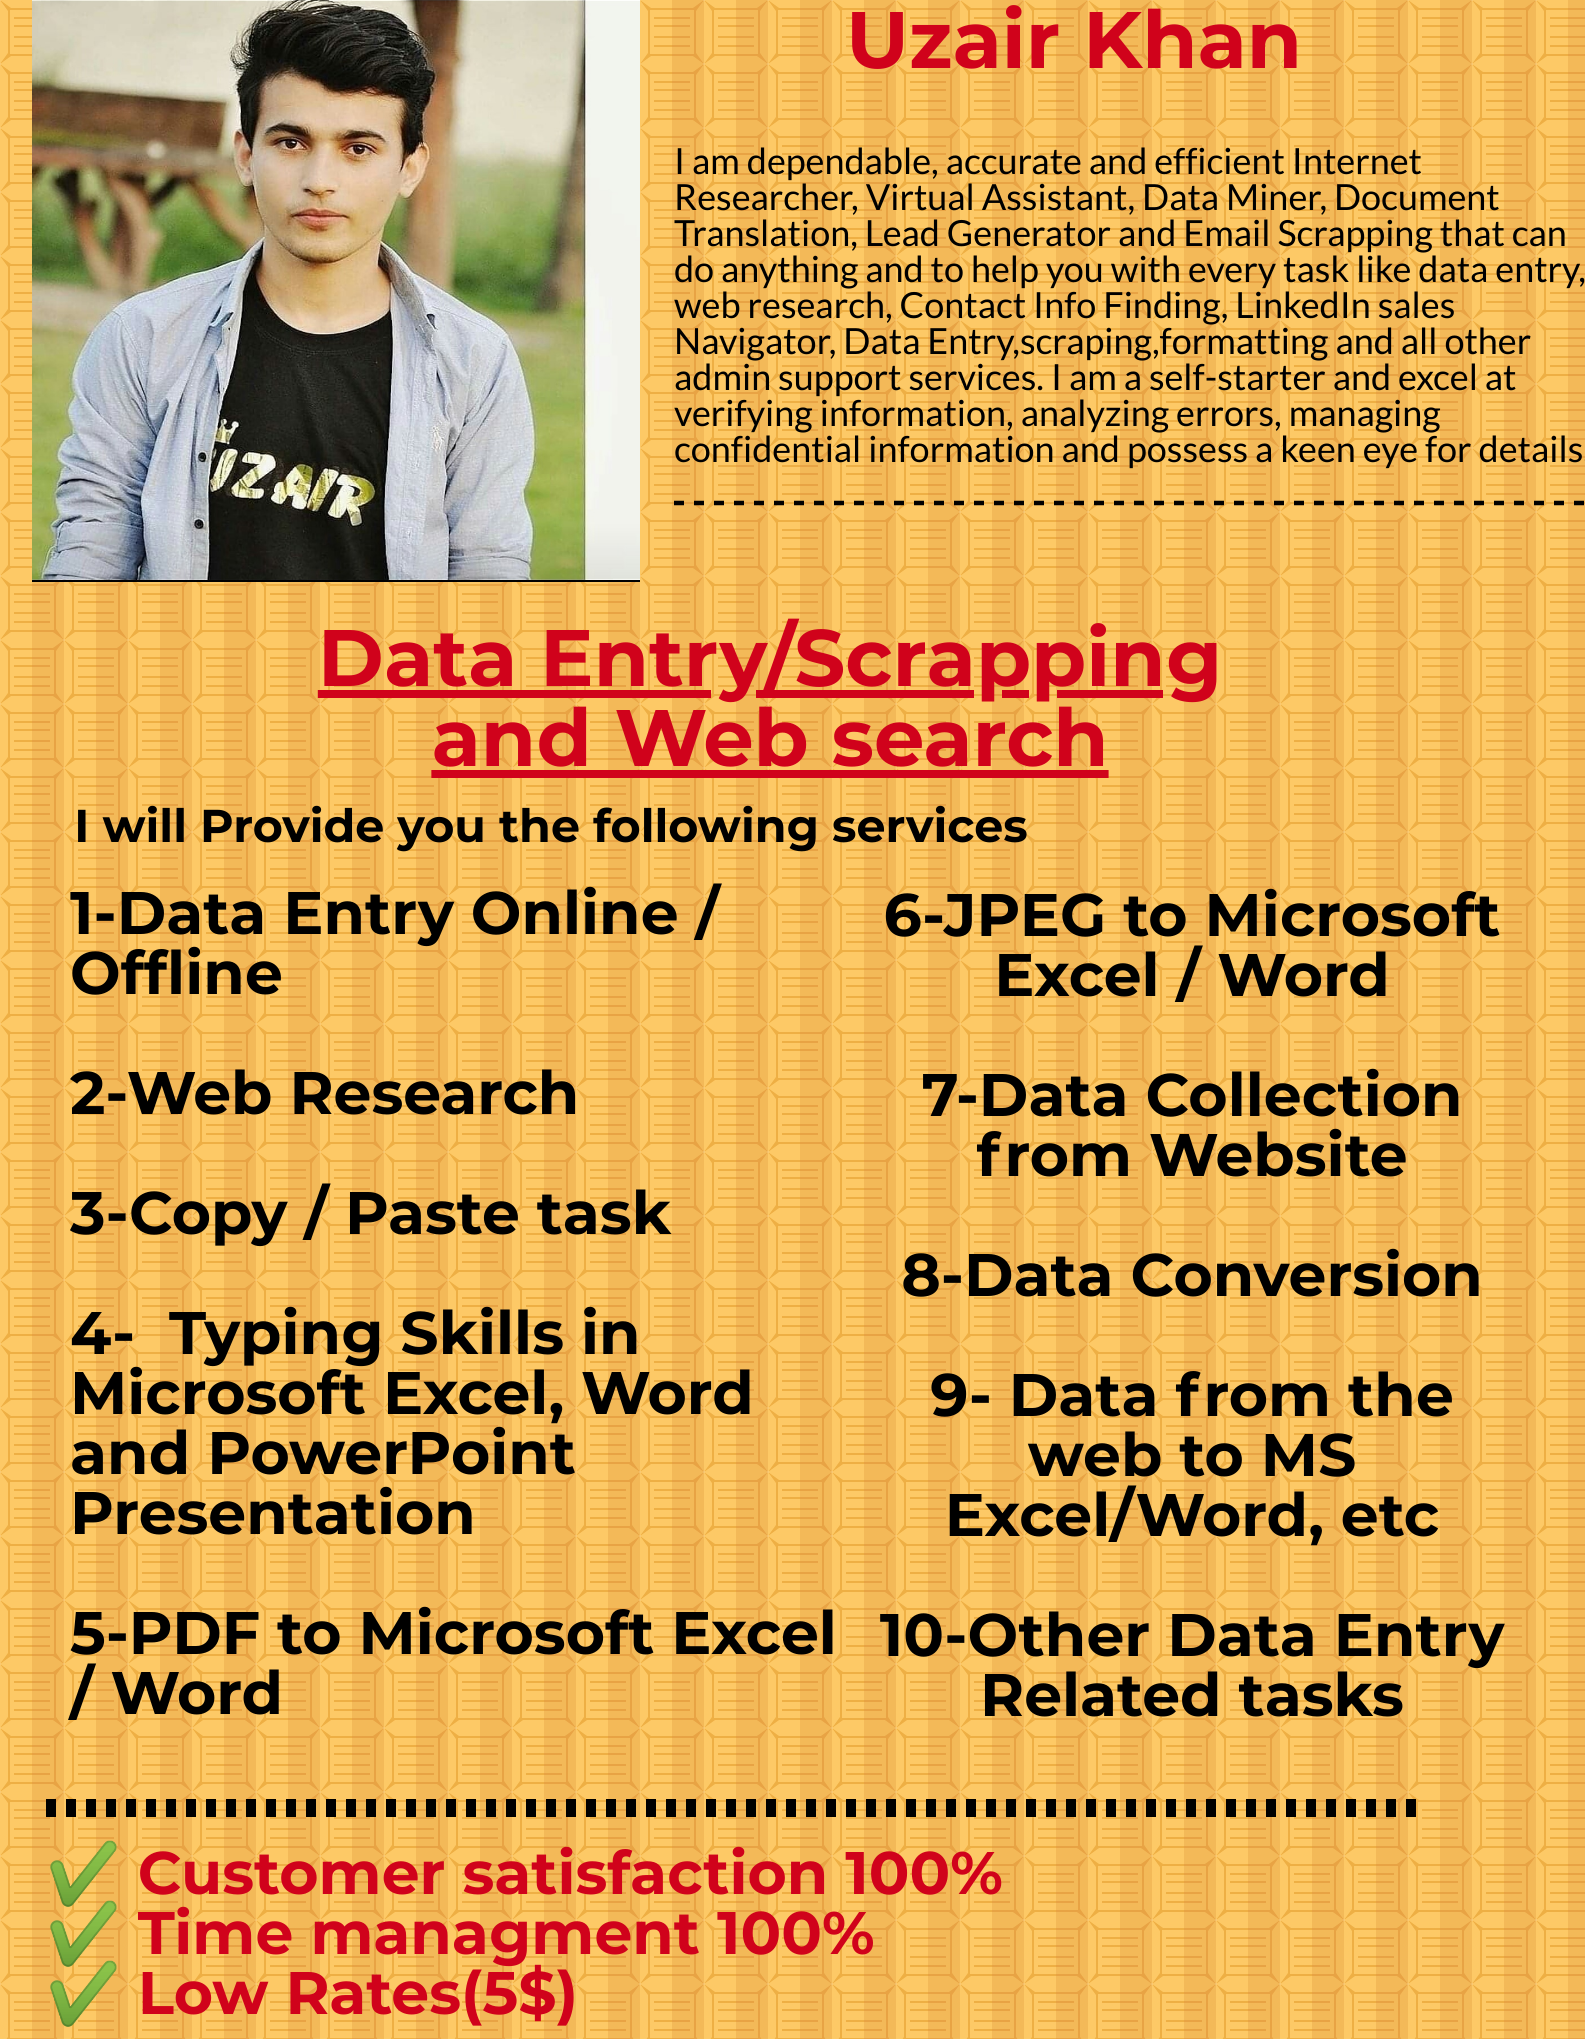 I will do impressive data scrapping and data mining with quality web search